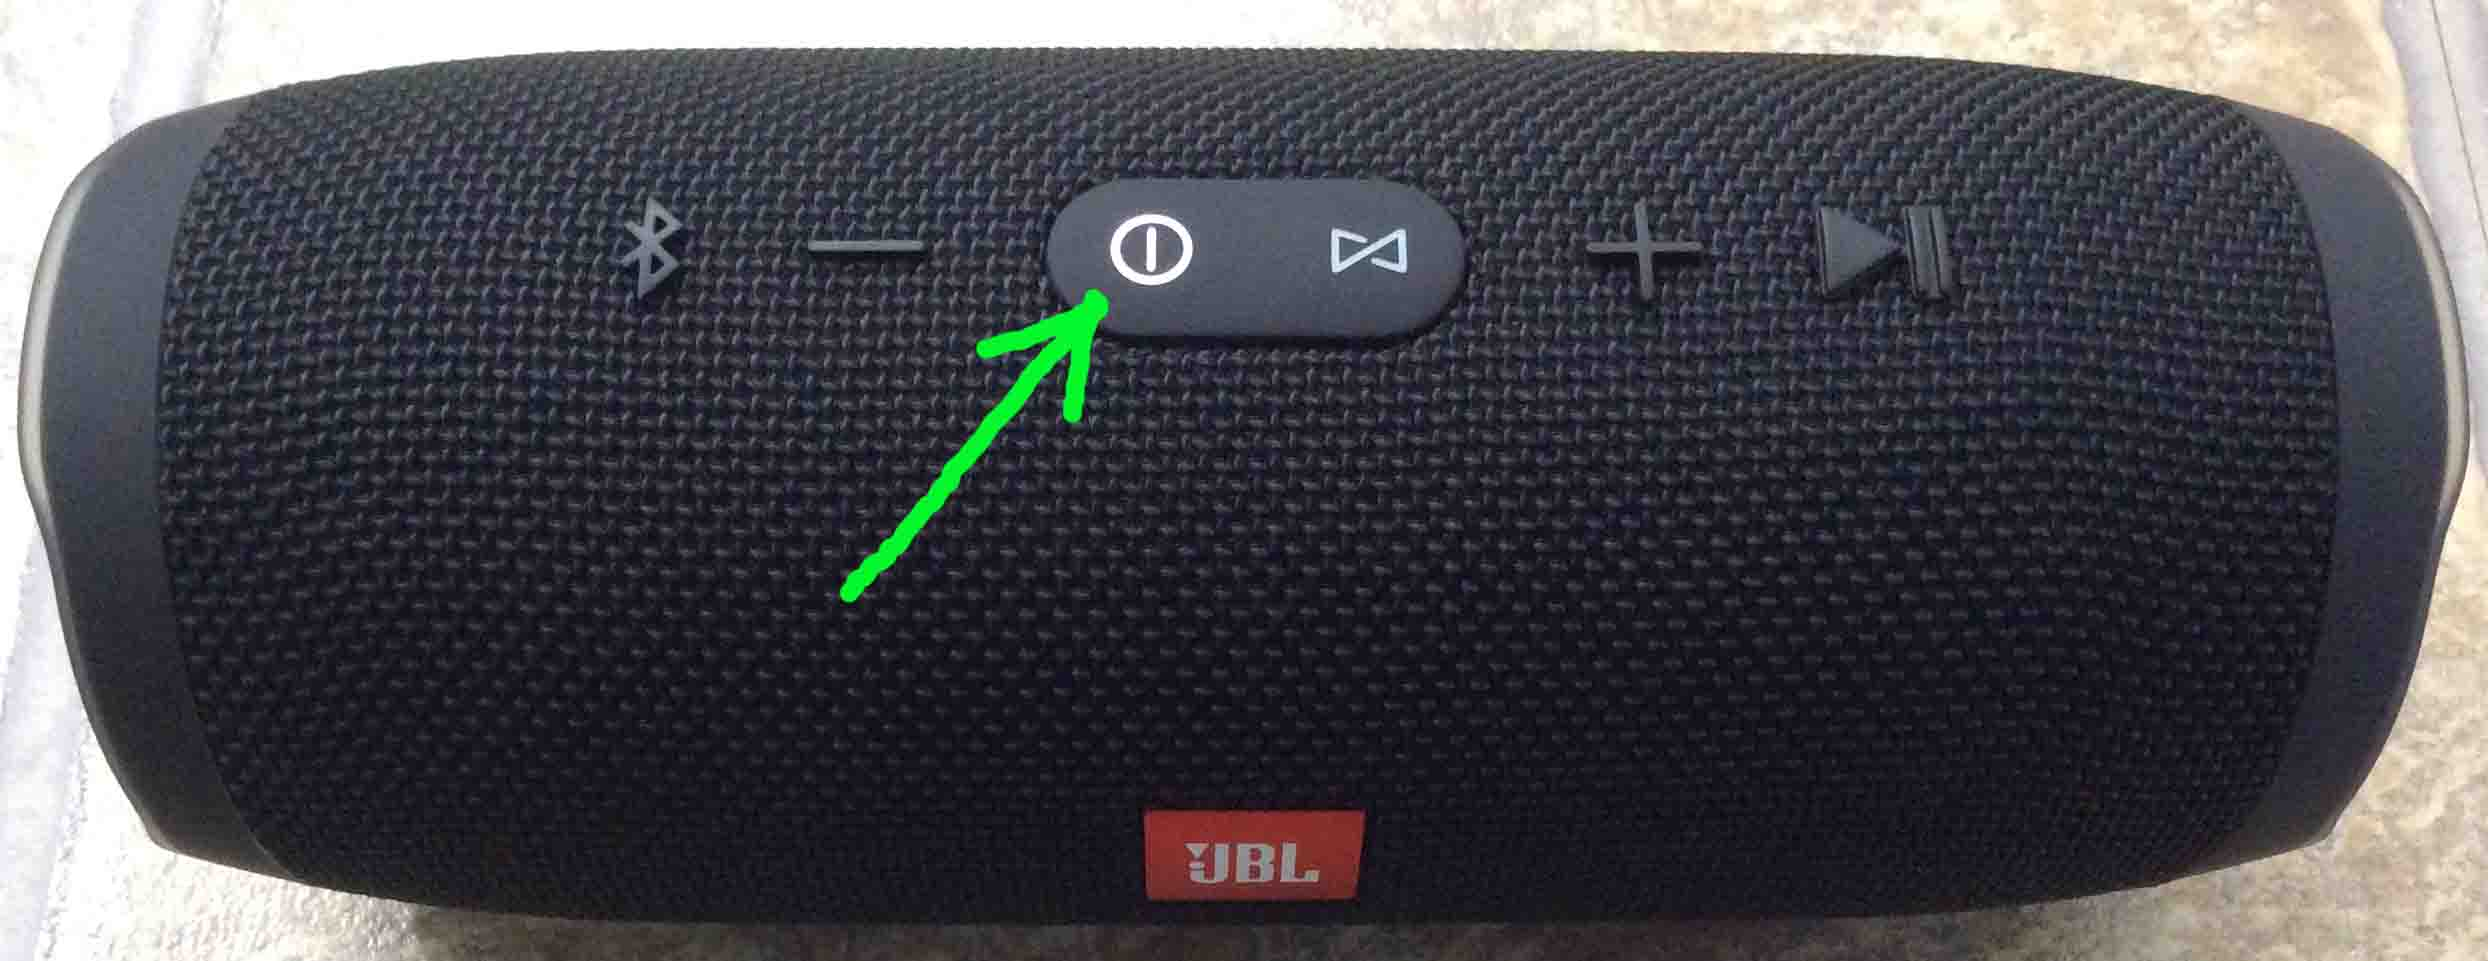 Pairing Jbl Charge 3 With Google Home Smart Speakers Original Mini Water Heater Thermostat Waterheatertimer Org How To Wire Picture Of The